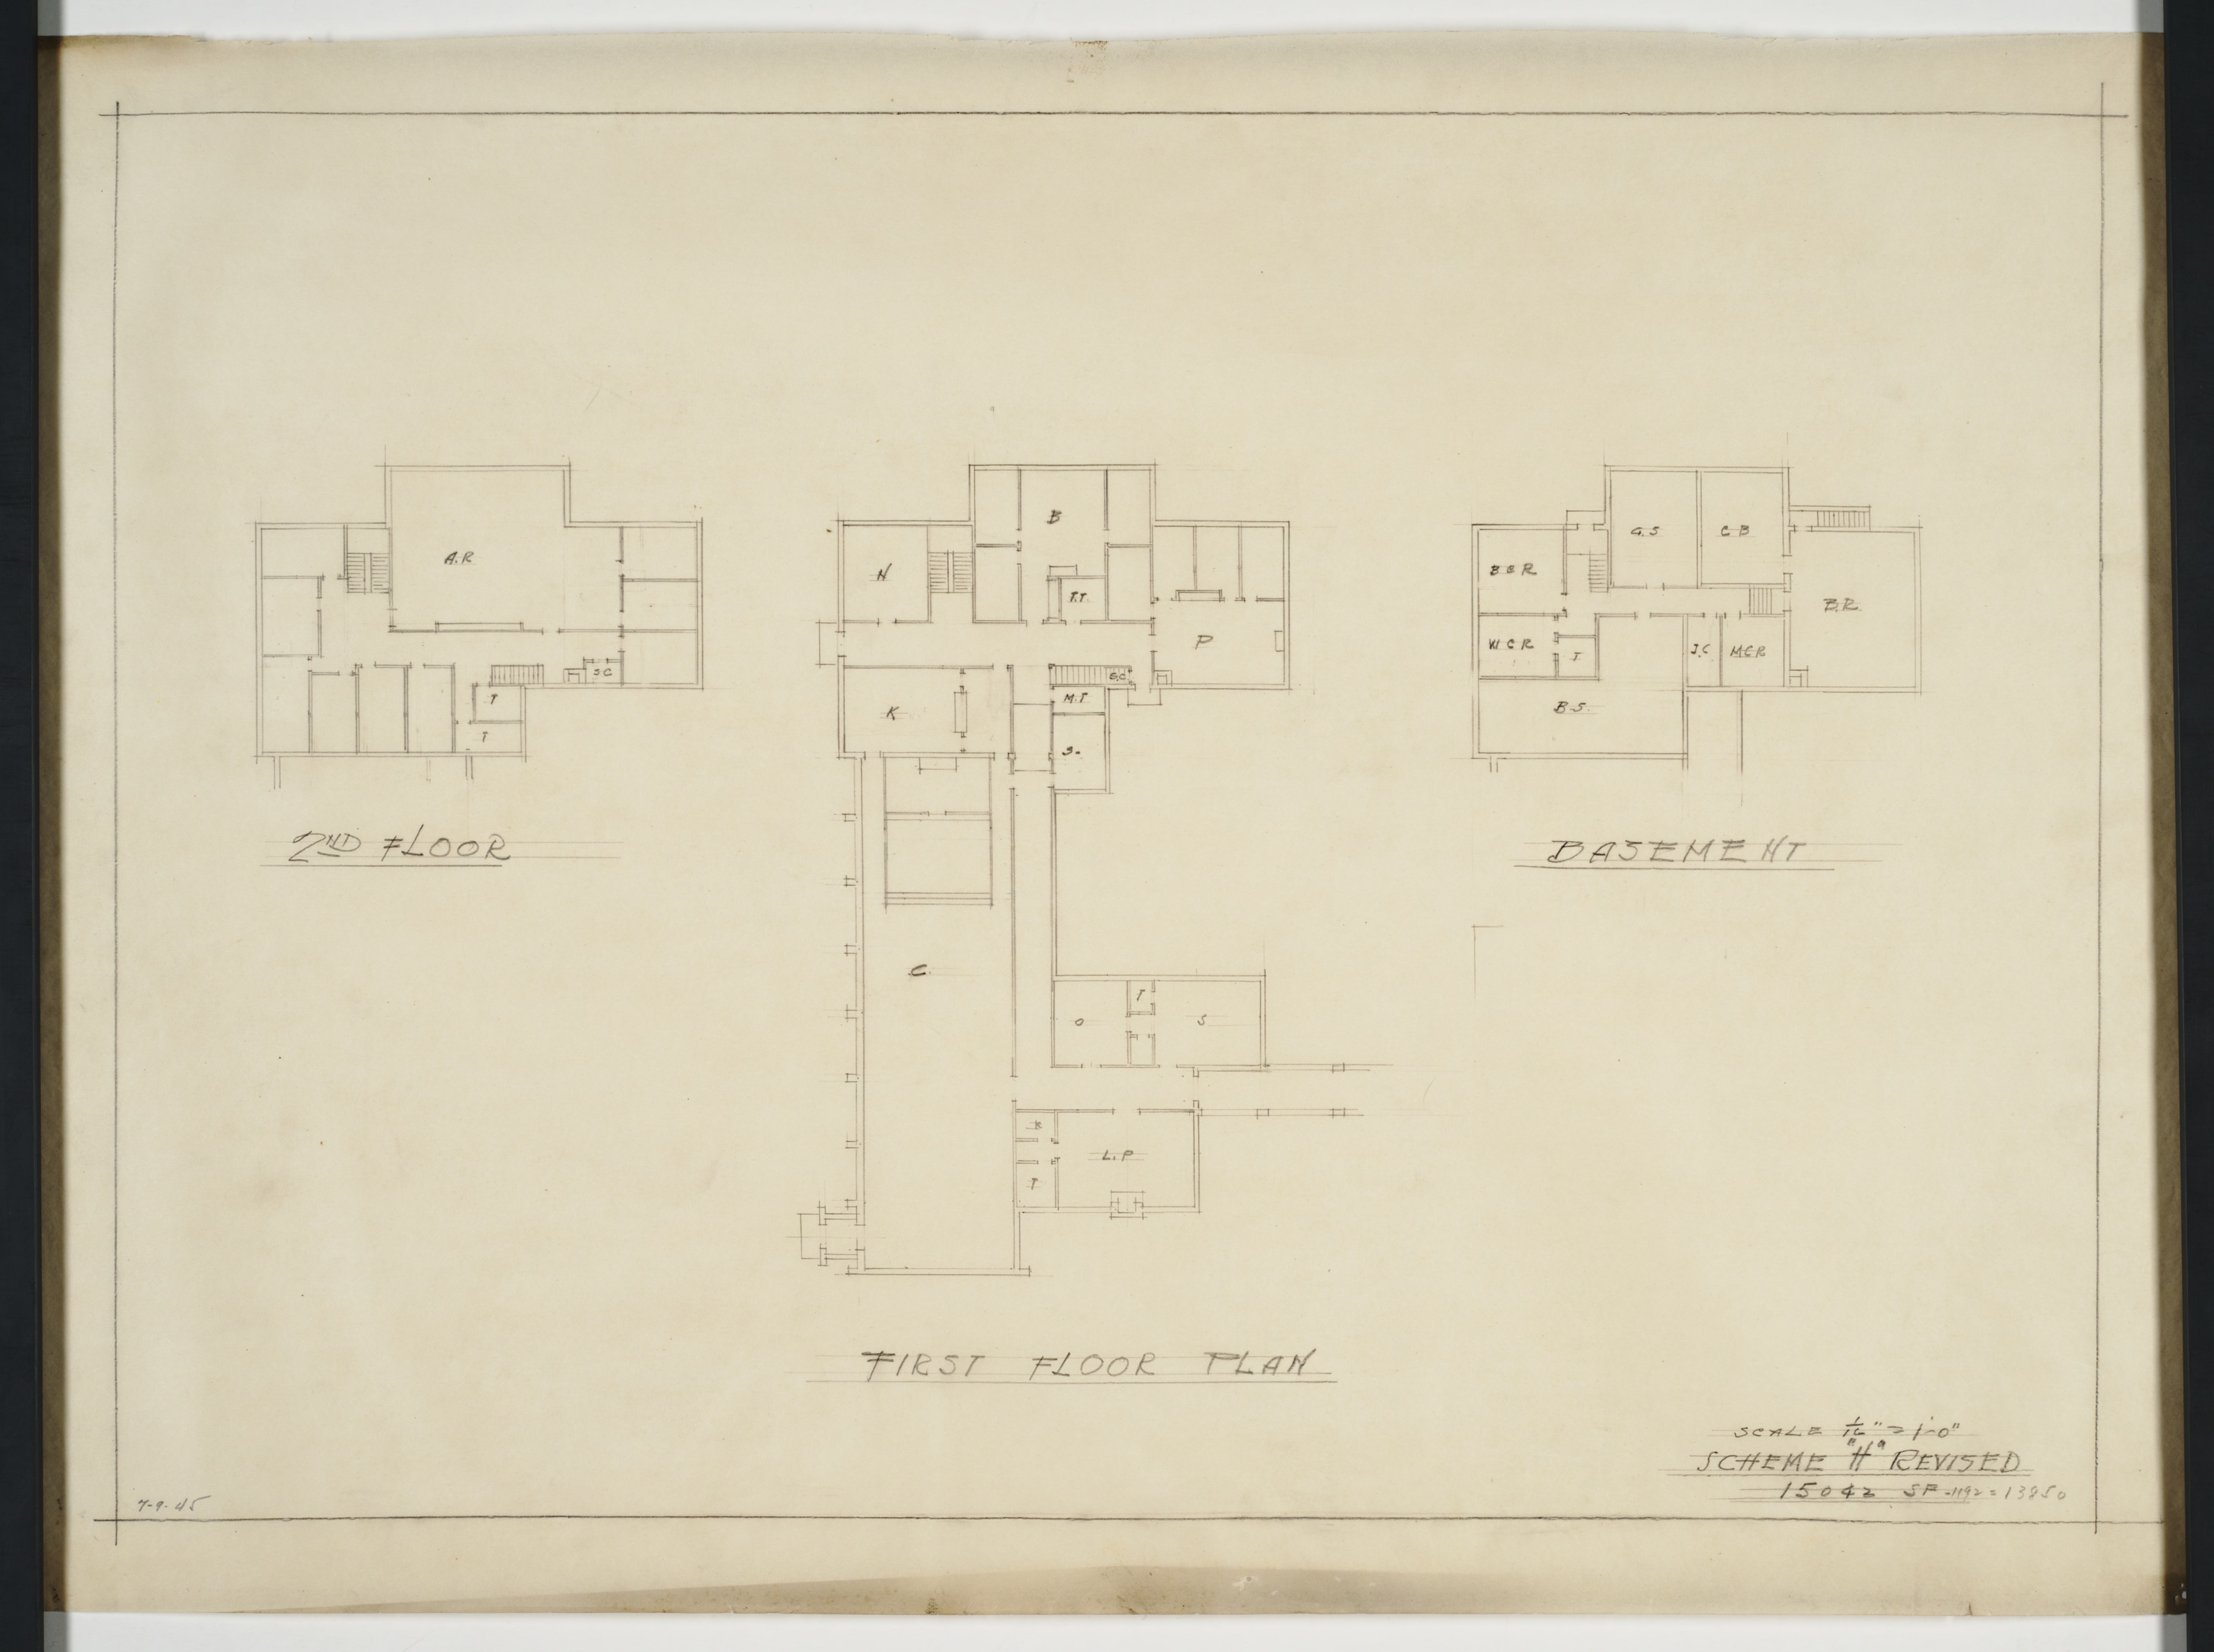 Second floor, first floor and basement floor plans